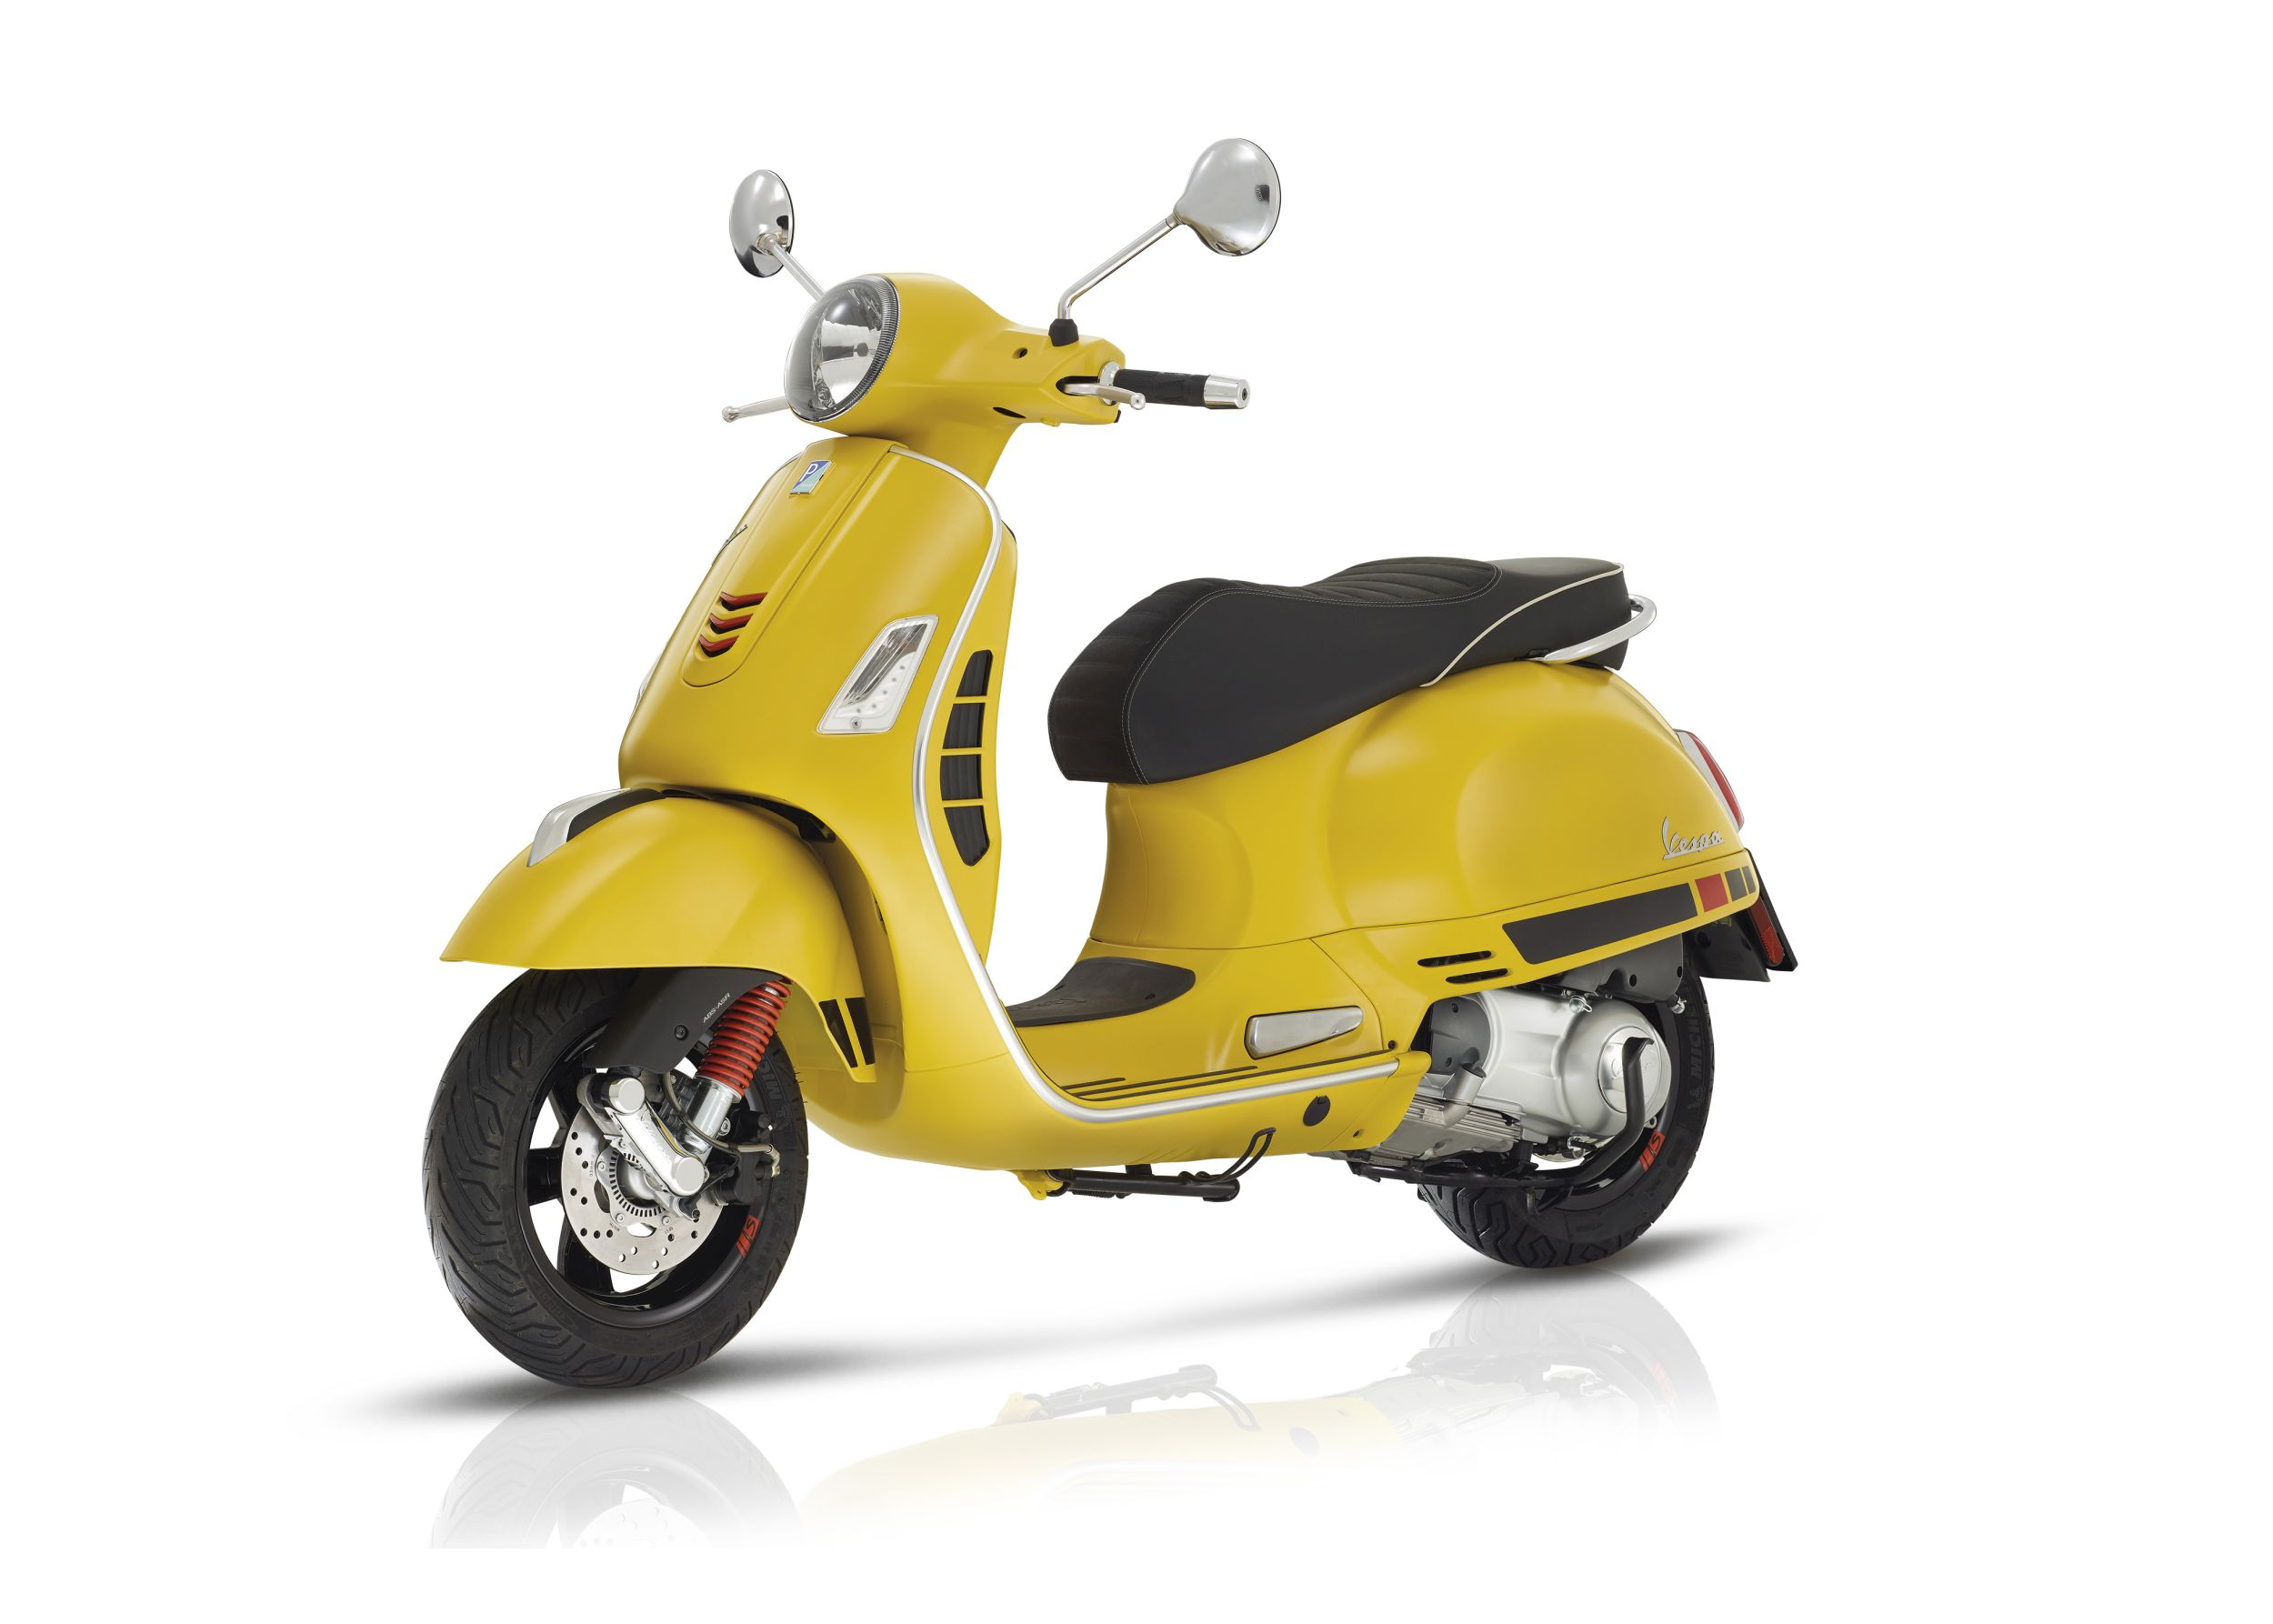 vespa gts 300 i e super sport all technical data of the. Black Bedroom Furniture Sets. Home Design Ideas